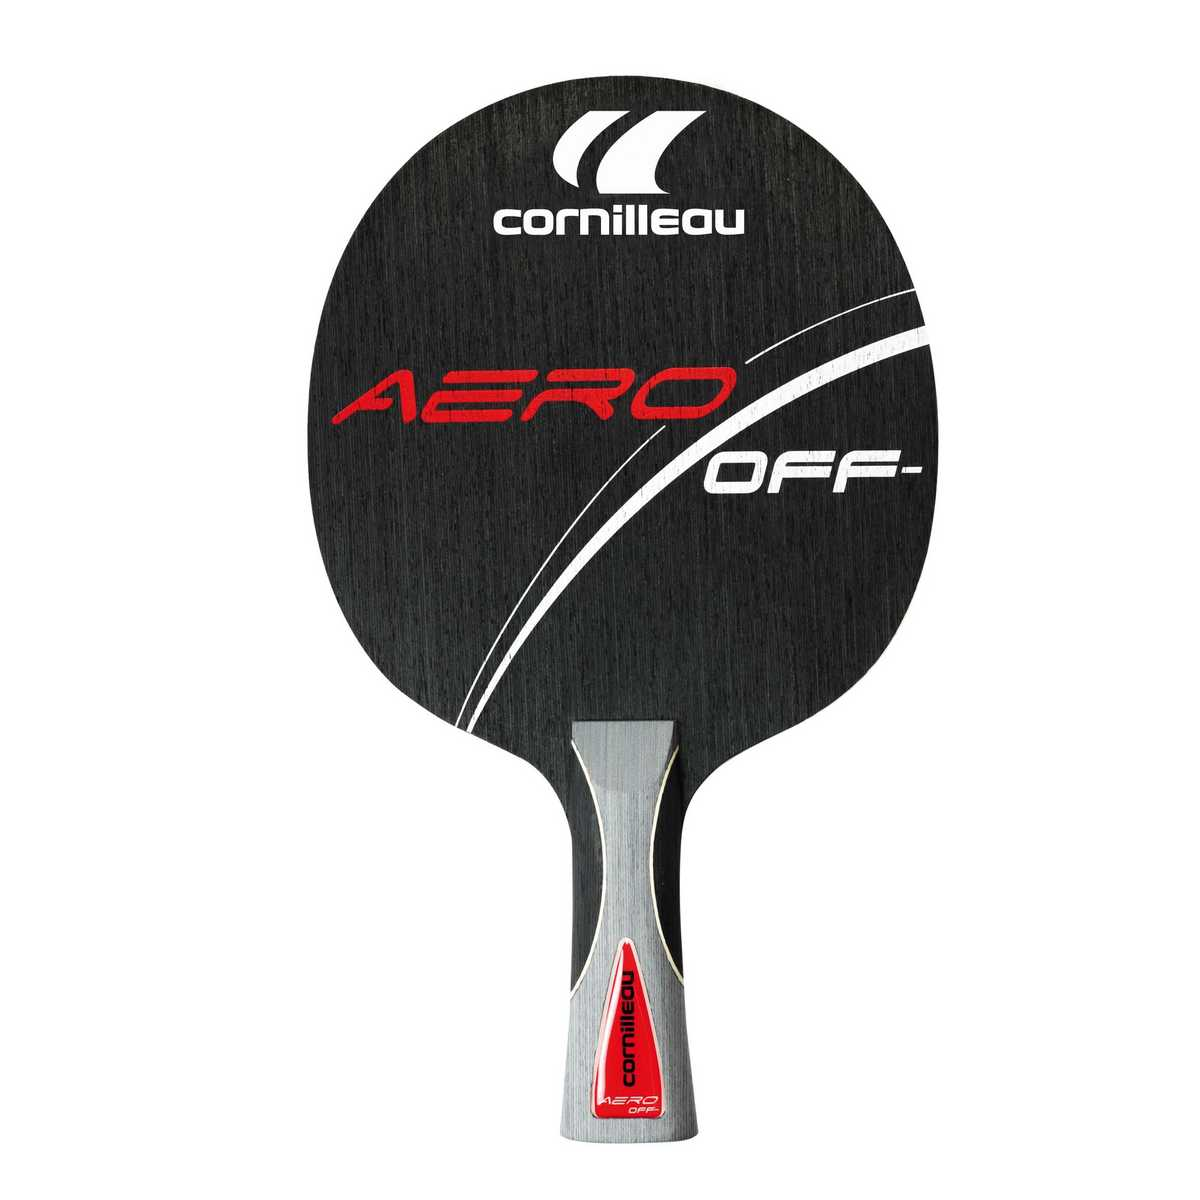 Wack Sport Tennis De Table Cornilleau Tennis De Table Bois Aero Off Wack Sport Les Pros